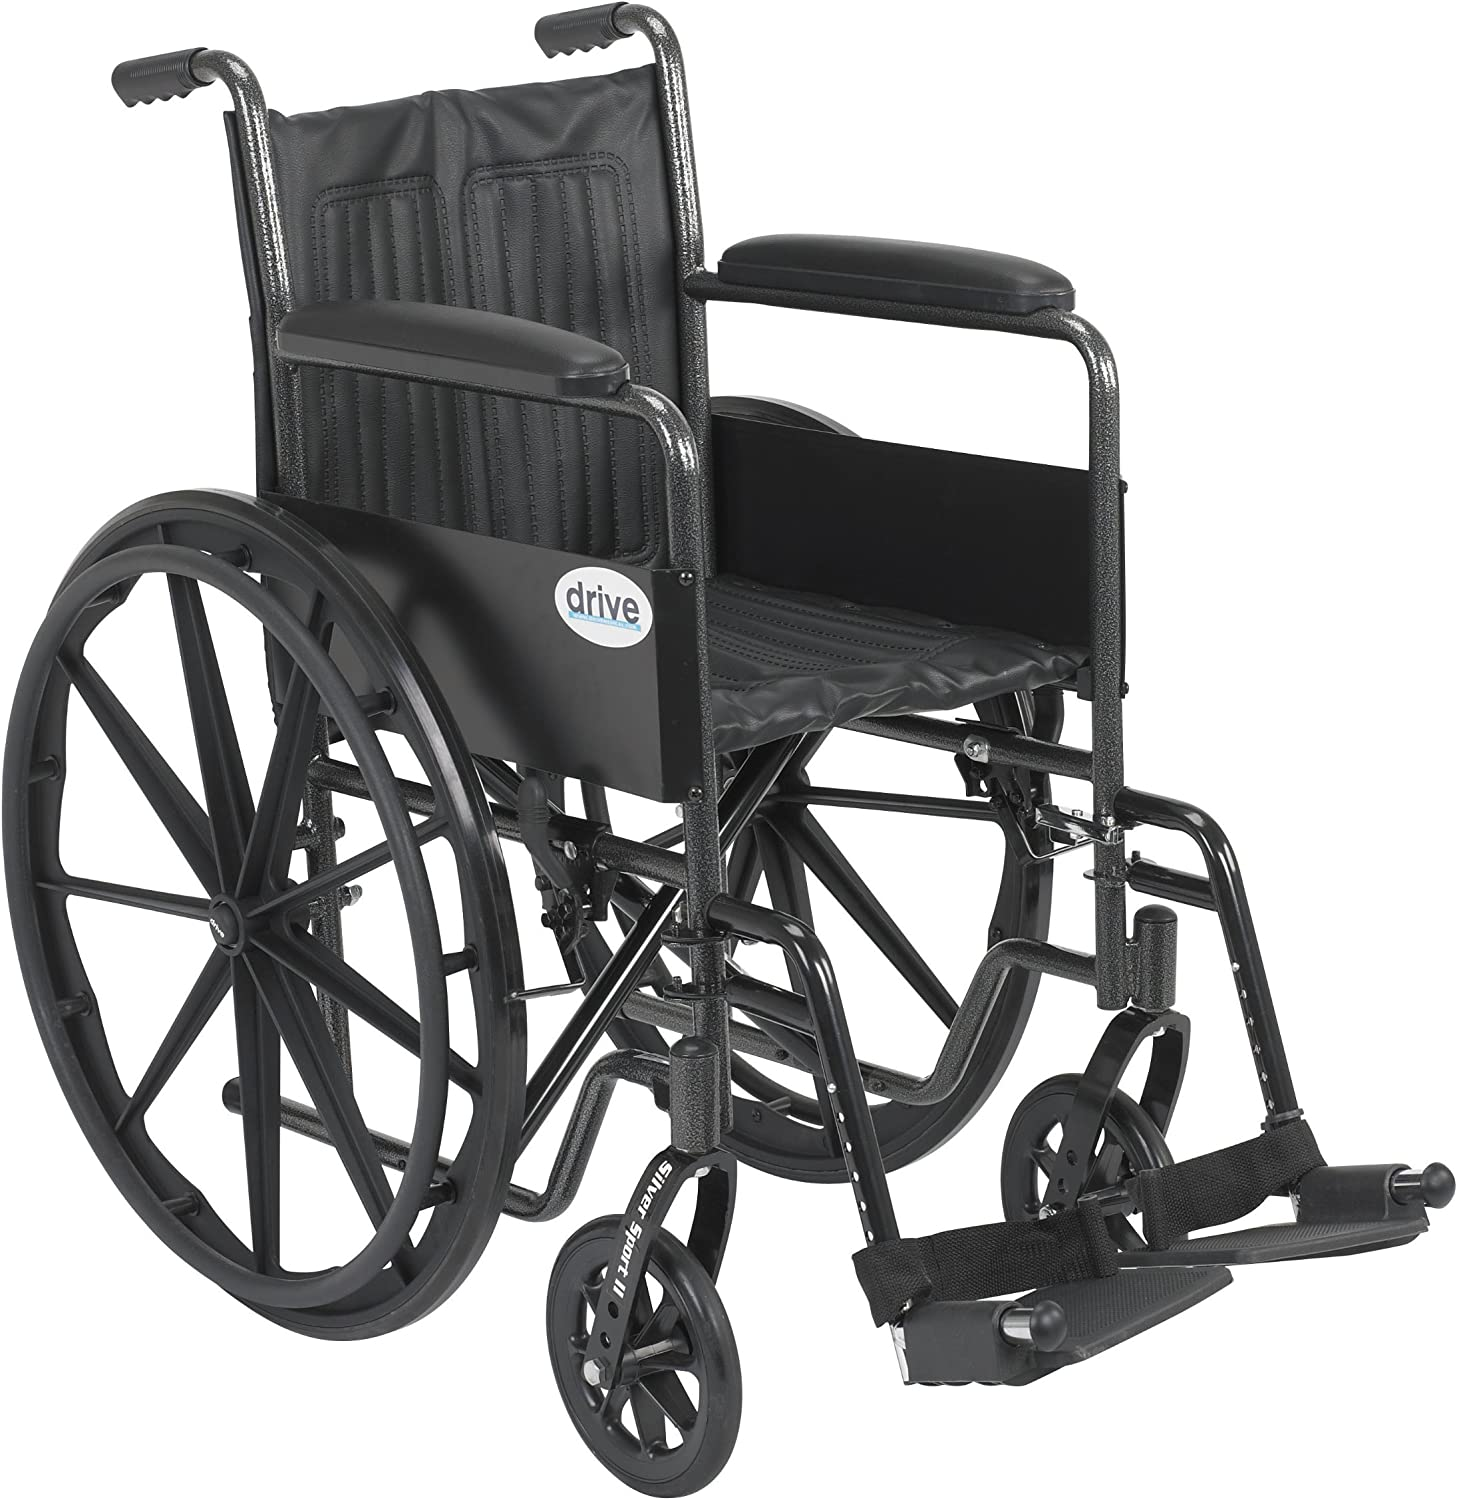 Drive Medical Silver Sport 2 Wheelchair with Various Arms Styles and Front Rigging Options, Black, 18 Inch 91vzCRv6FCL